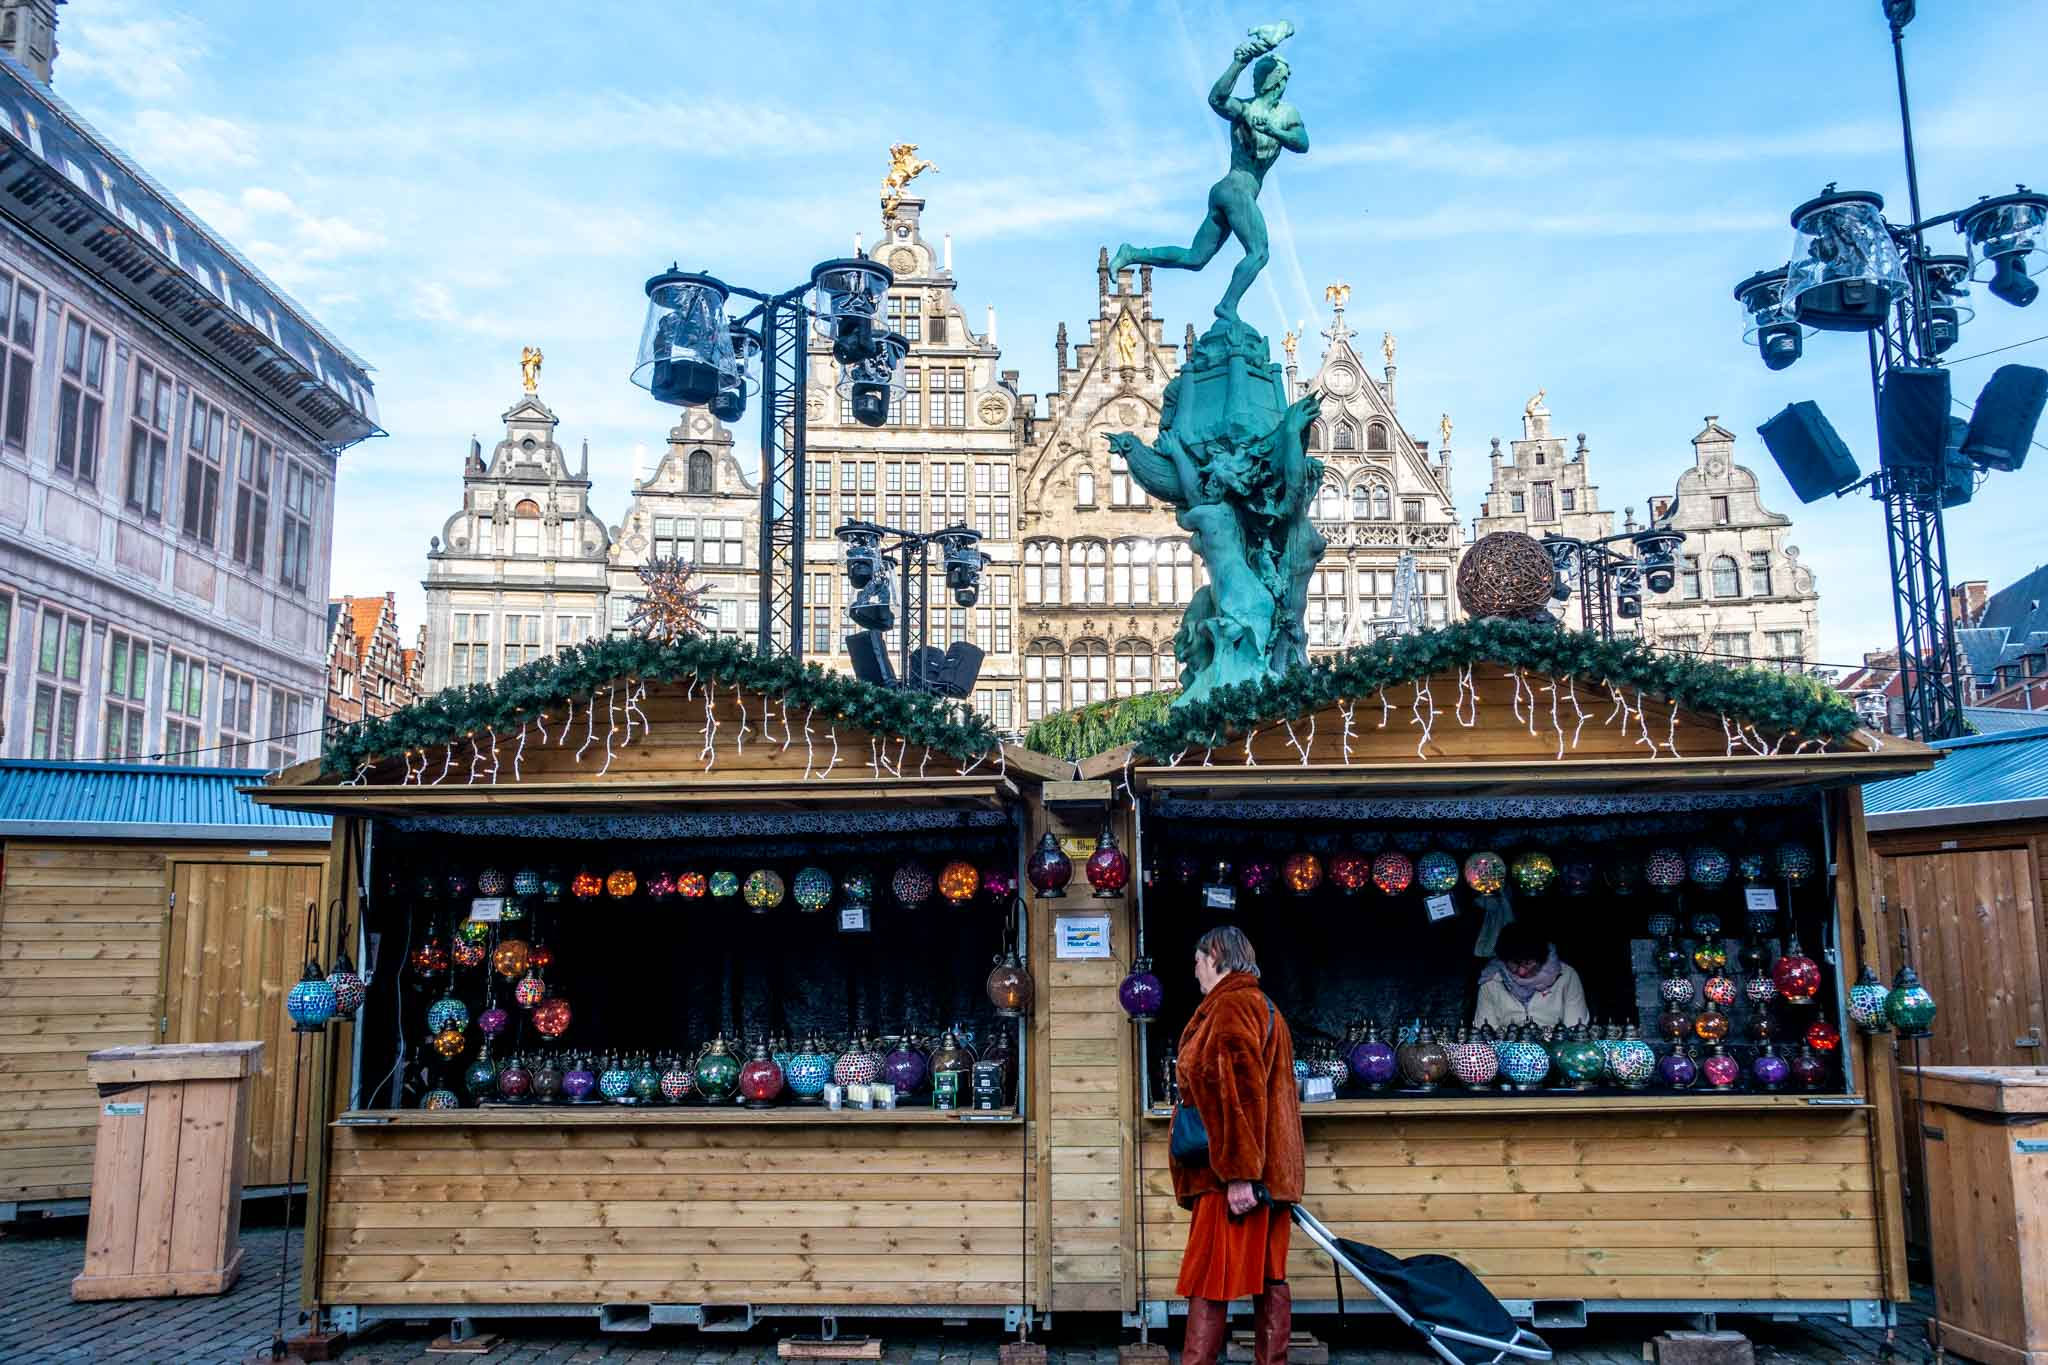 Woman shopping at the vendors in Grote Markt at the Antwerp Christmas market